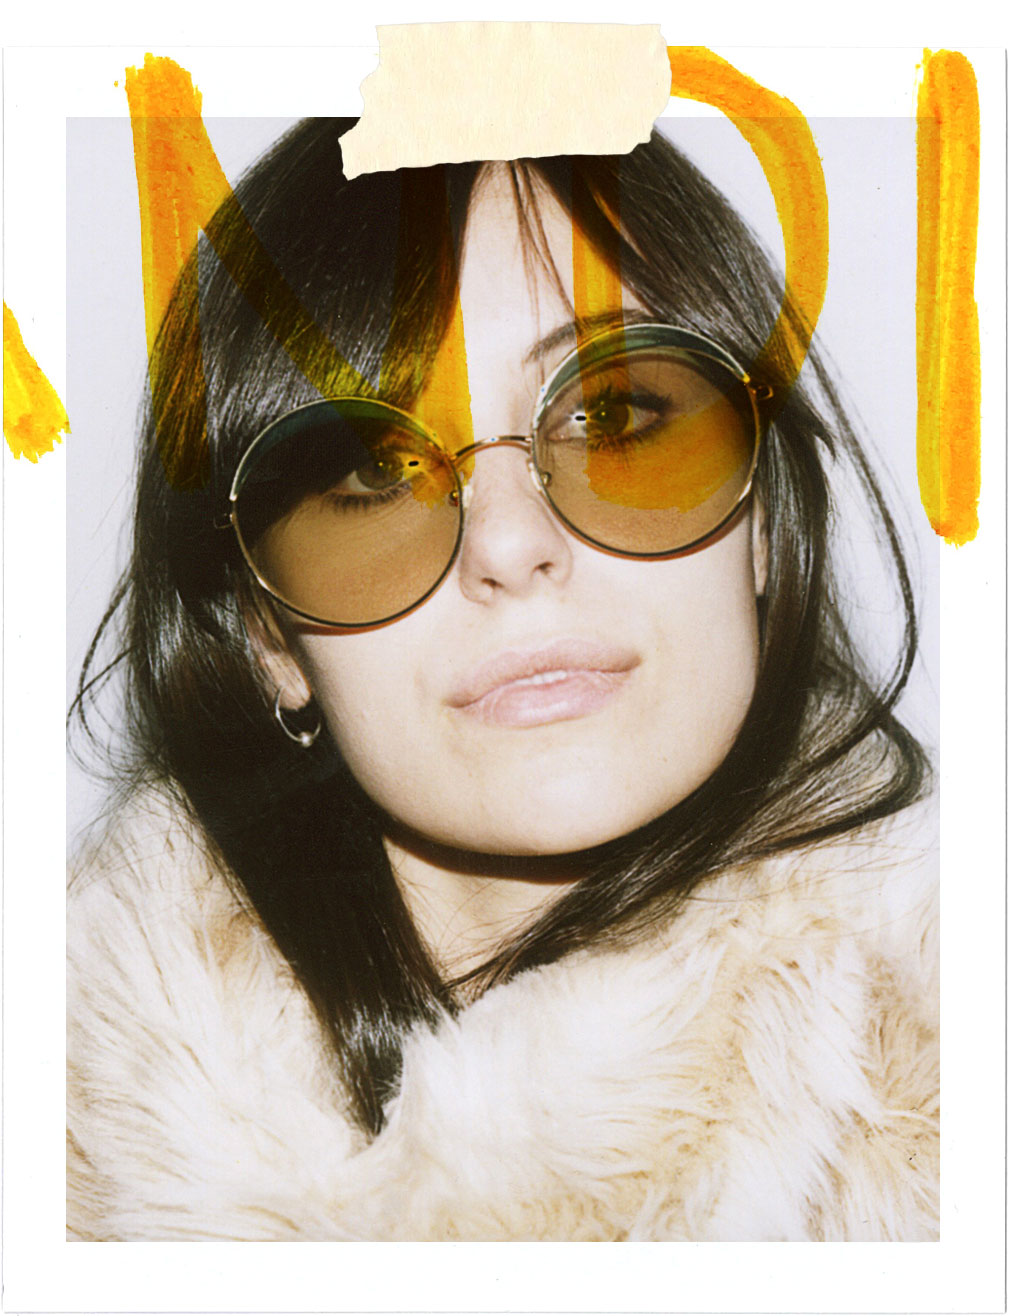 70s Inspired Fashion Polaroid | Influencer Marta Pozzan for Nice People Only by Jane Smith Agency